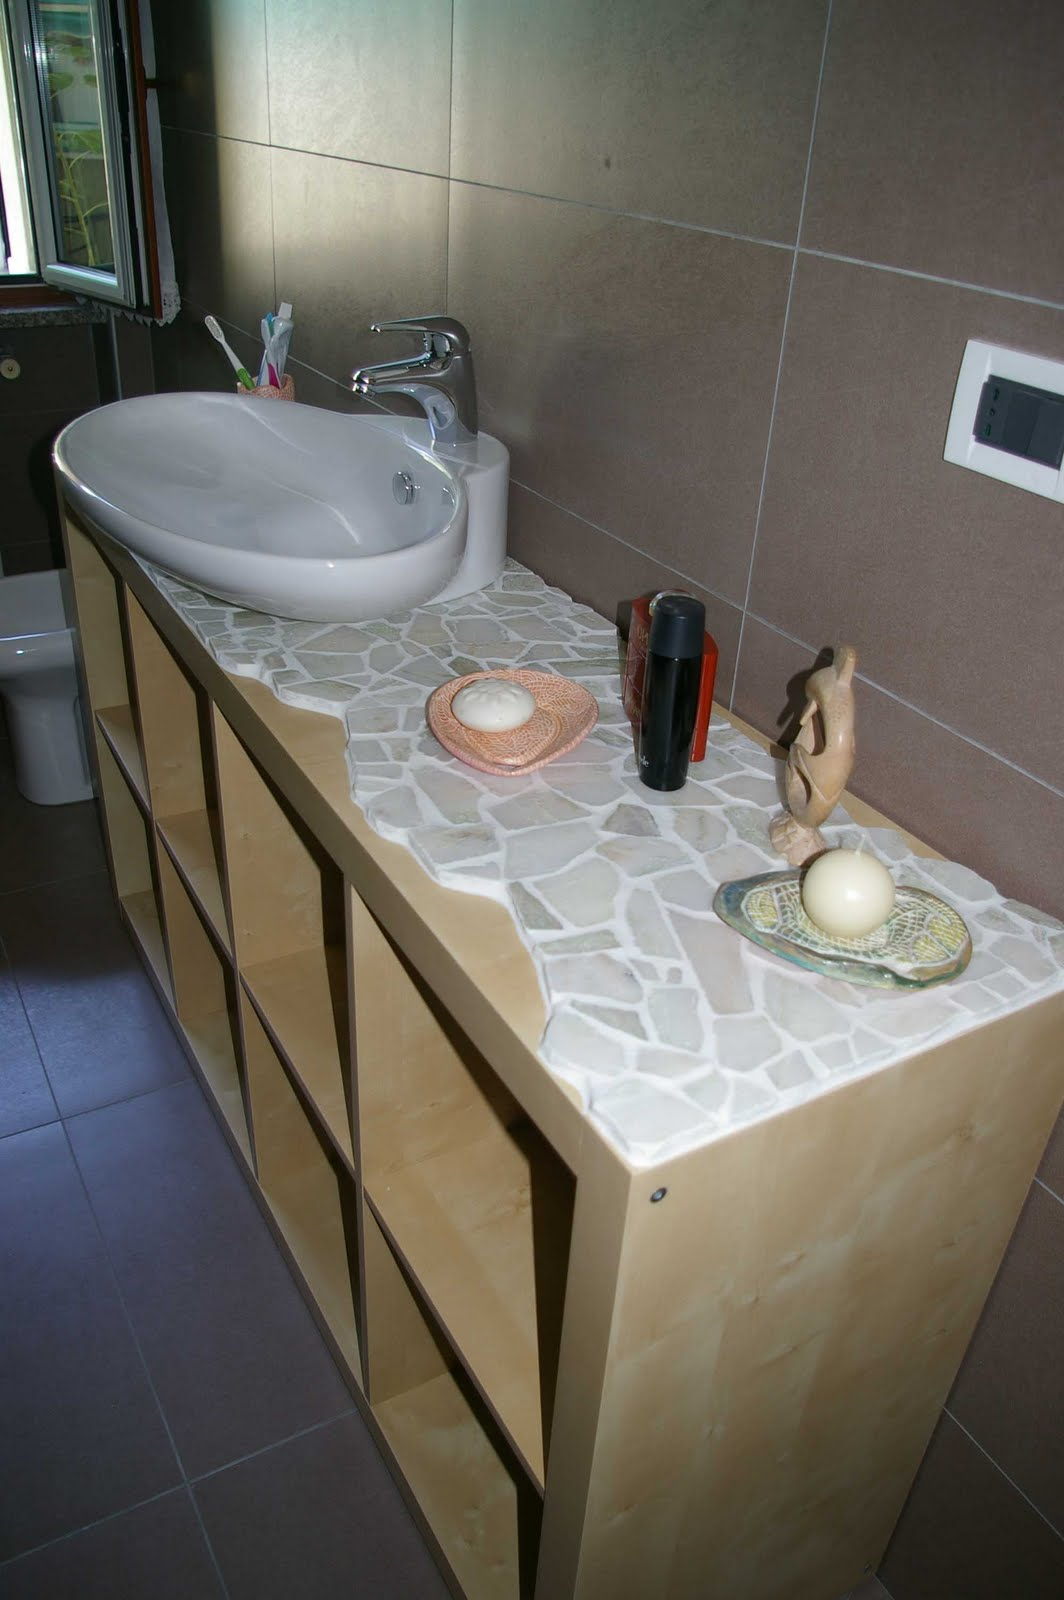 Ikea Bathroom Sink : EXPEDIT sink cabinet - IKEA Hackers - IKEA Hackers